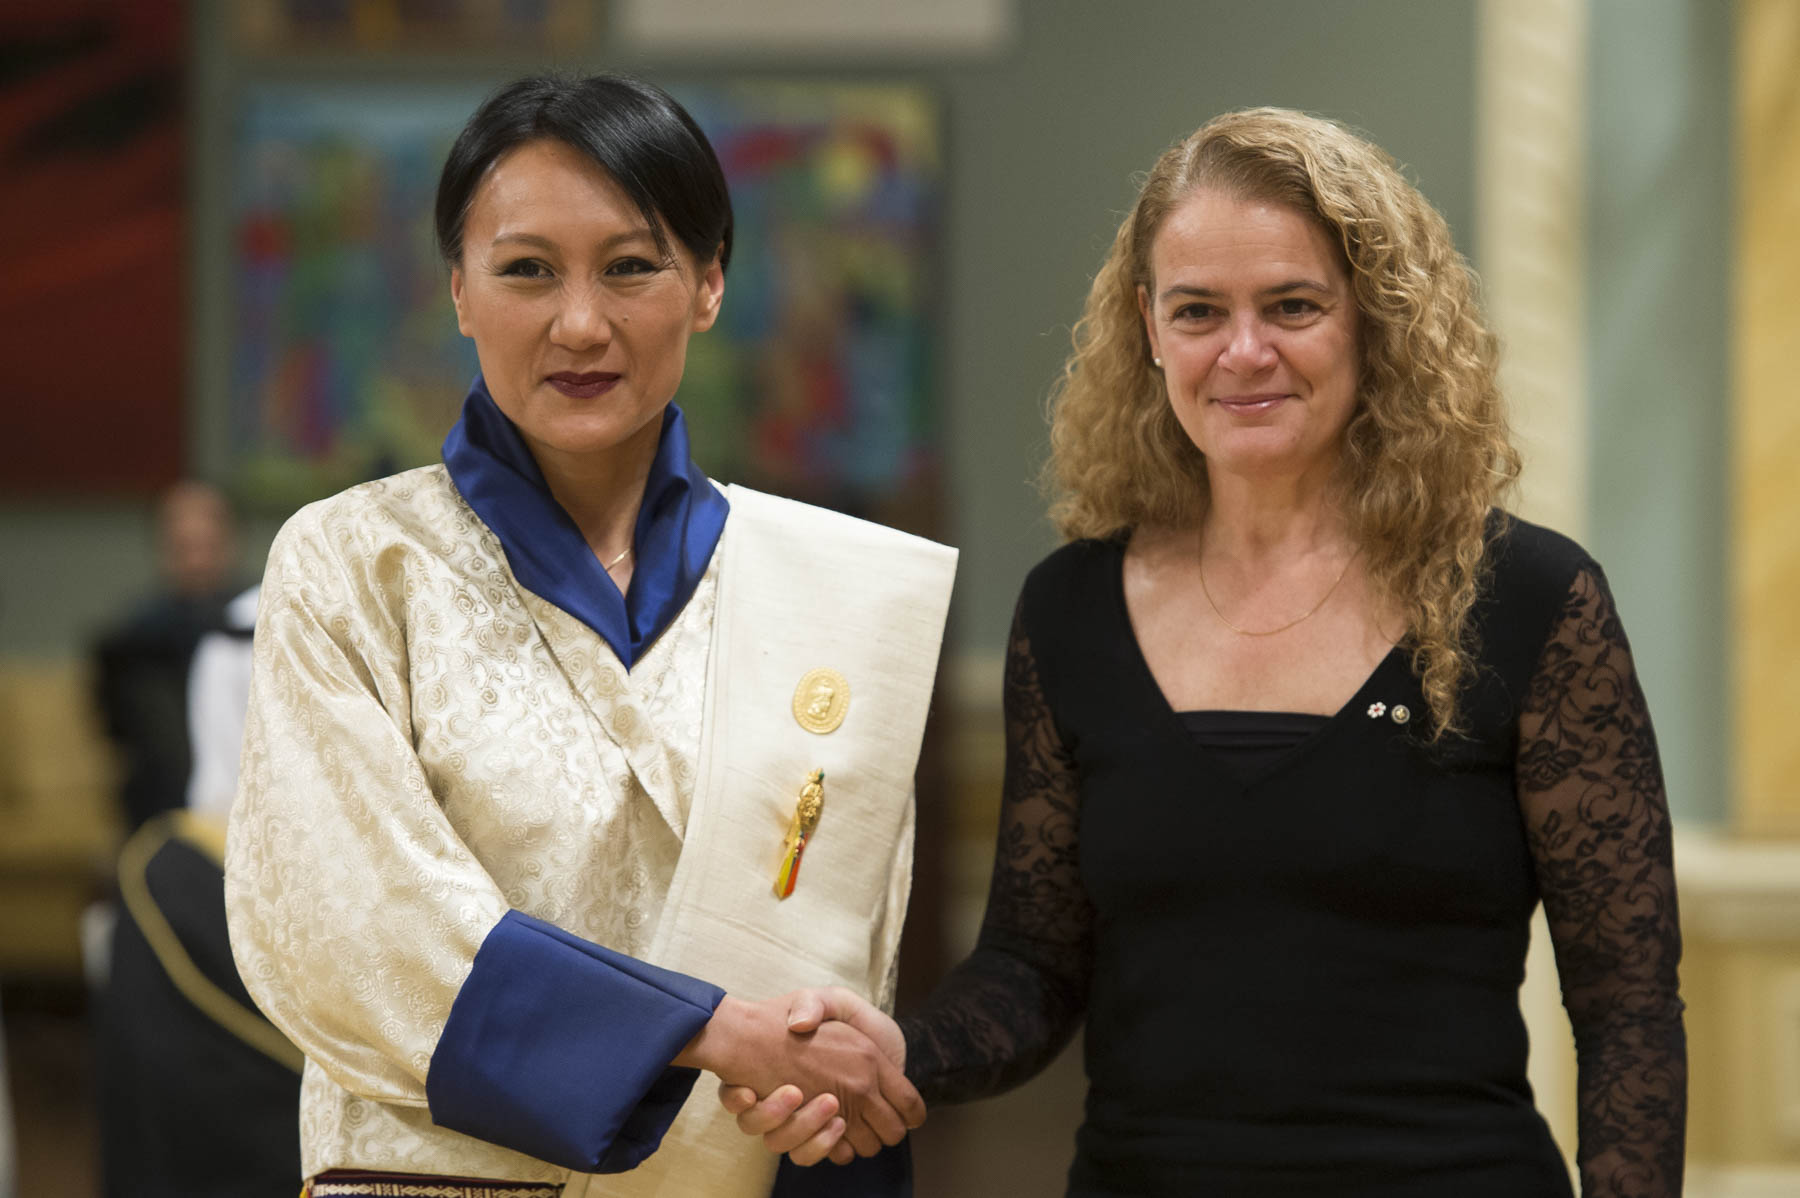 Her Excellency Doma Tshering, Ambassador of the Kingdom of Bhutan was next to present her letters of credence.